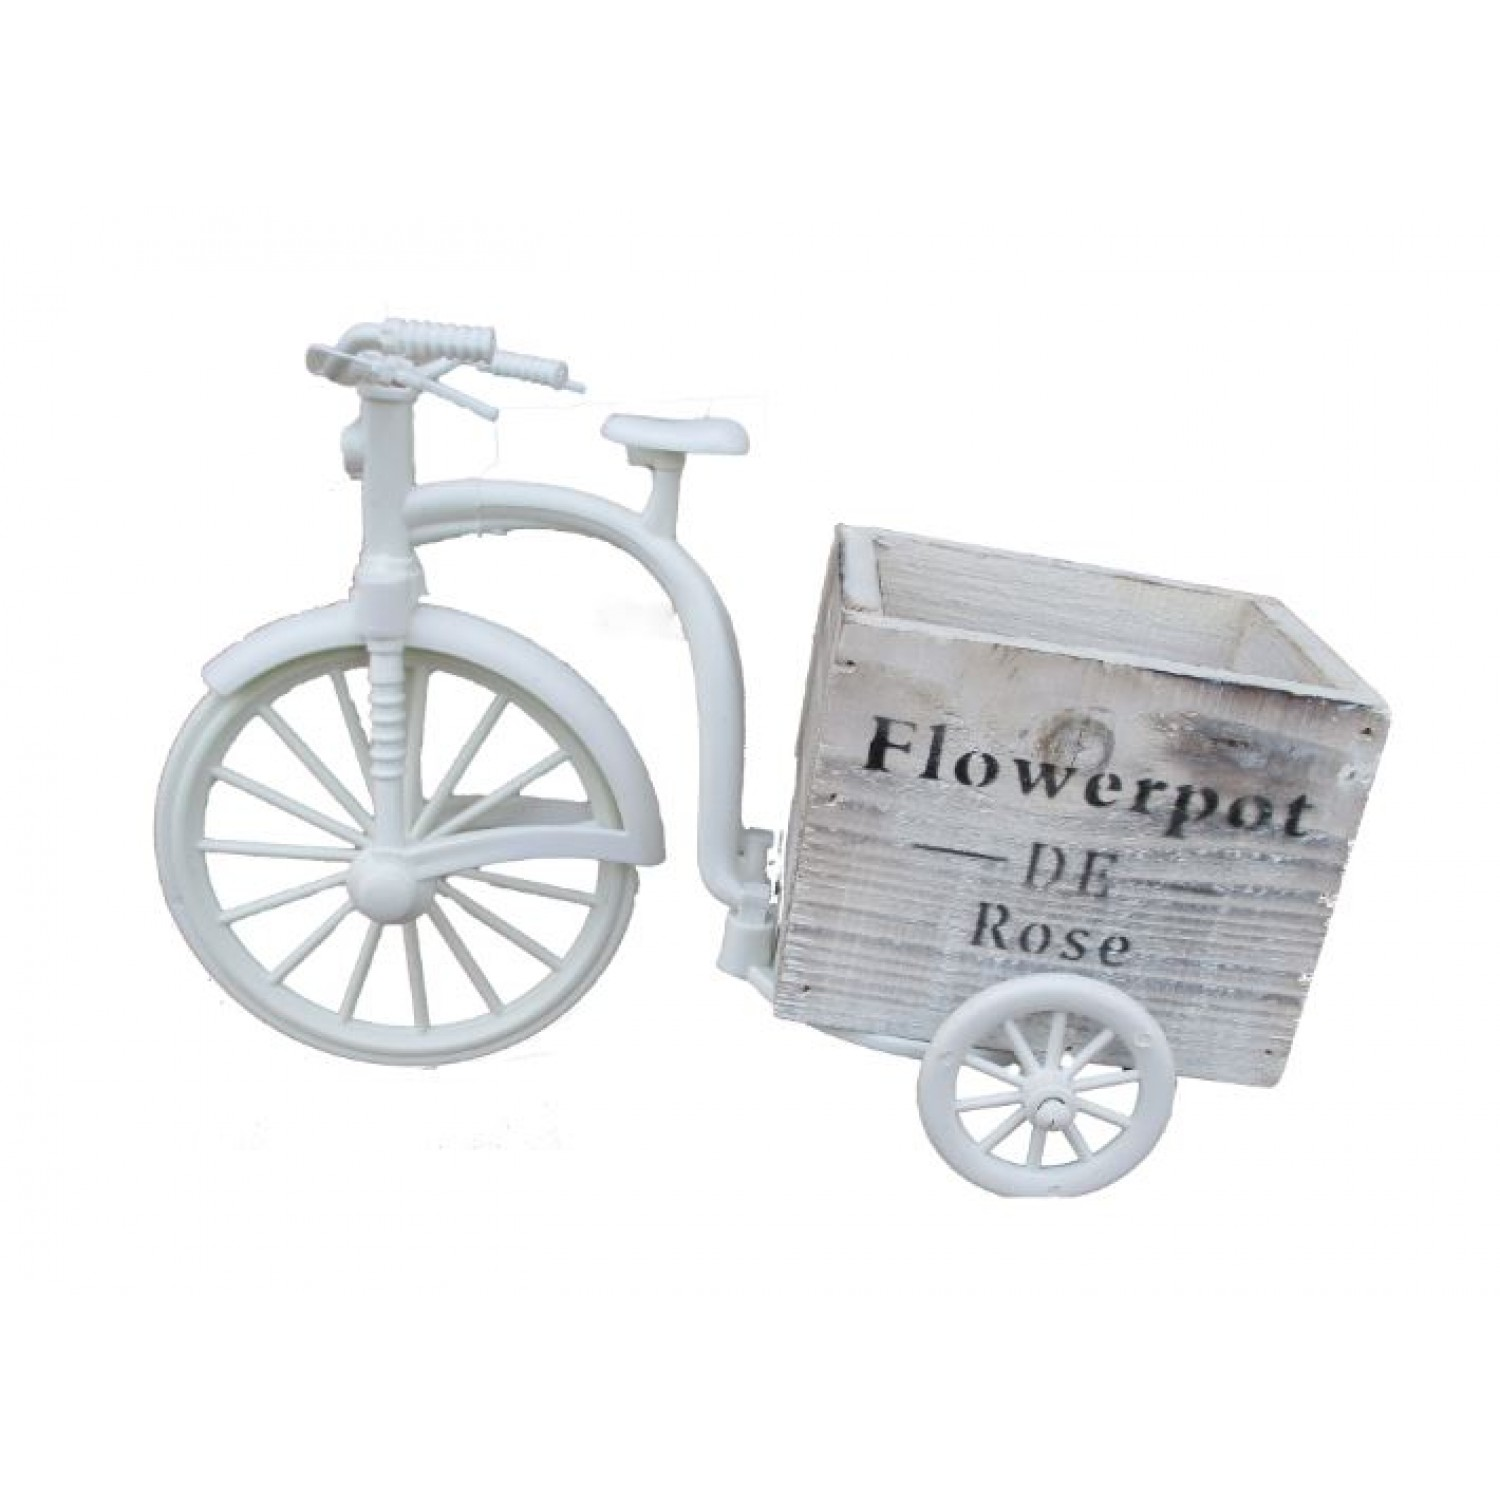 Wooden TriCycle  flower stand 26 L X 17.5 H x 13 W- single pc